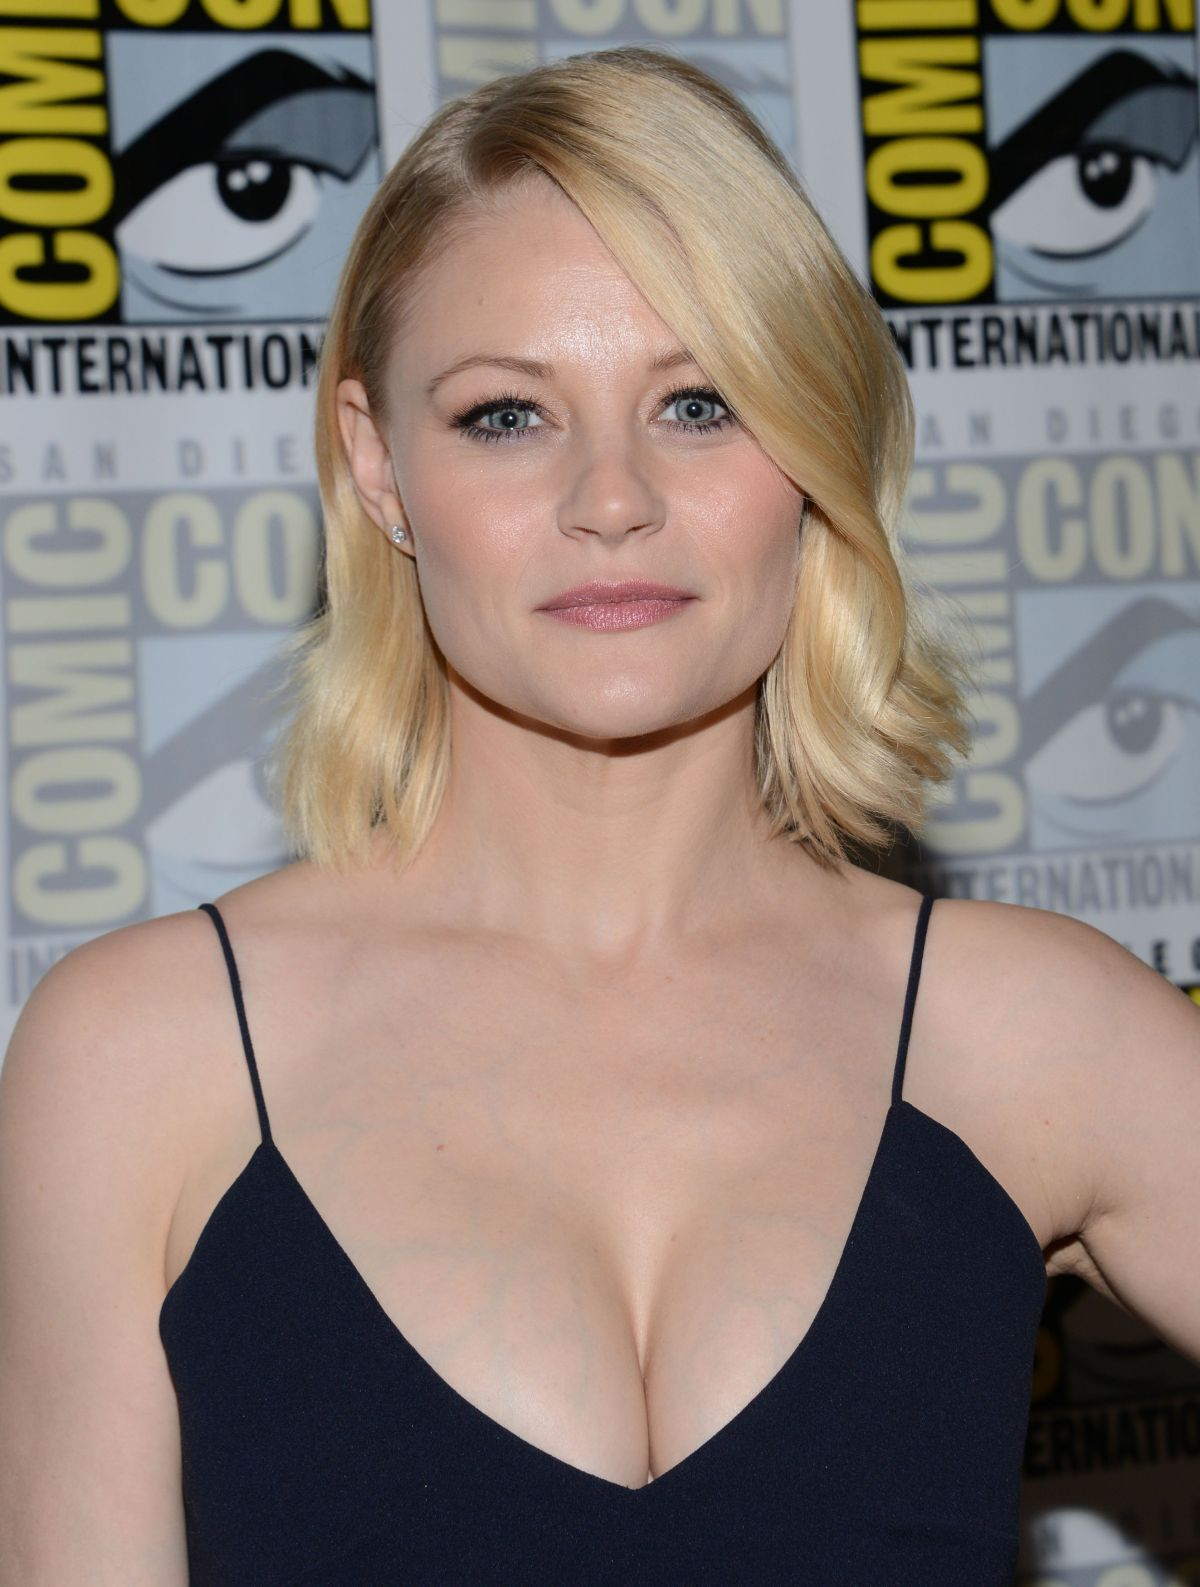 Emilie de Ravin nudes (81 foto and video), Topless, Paparazzi, Boobs, braless 2017